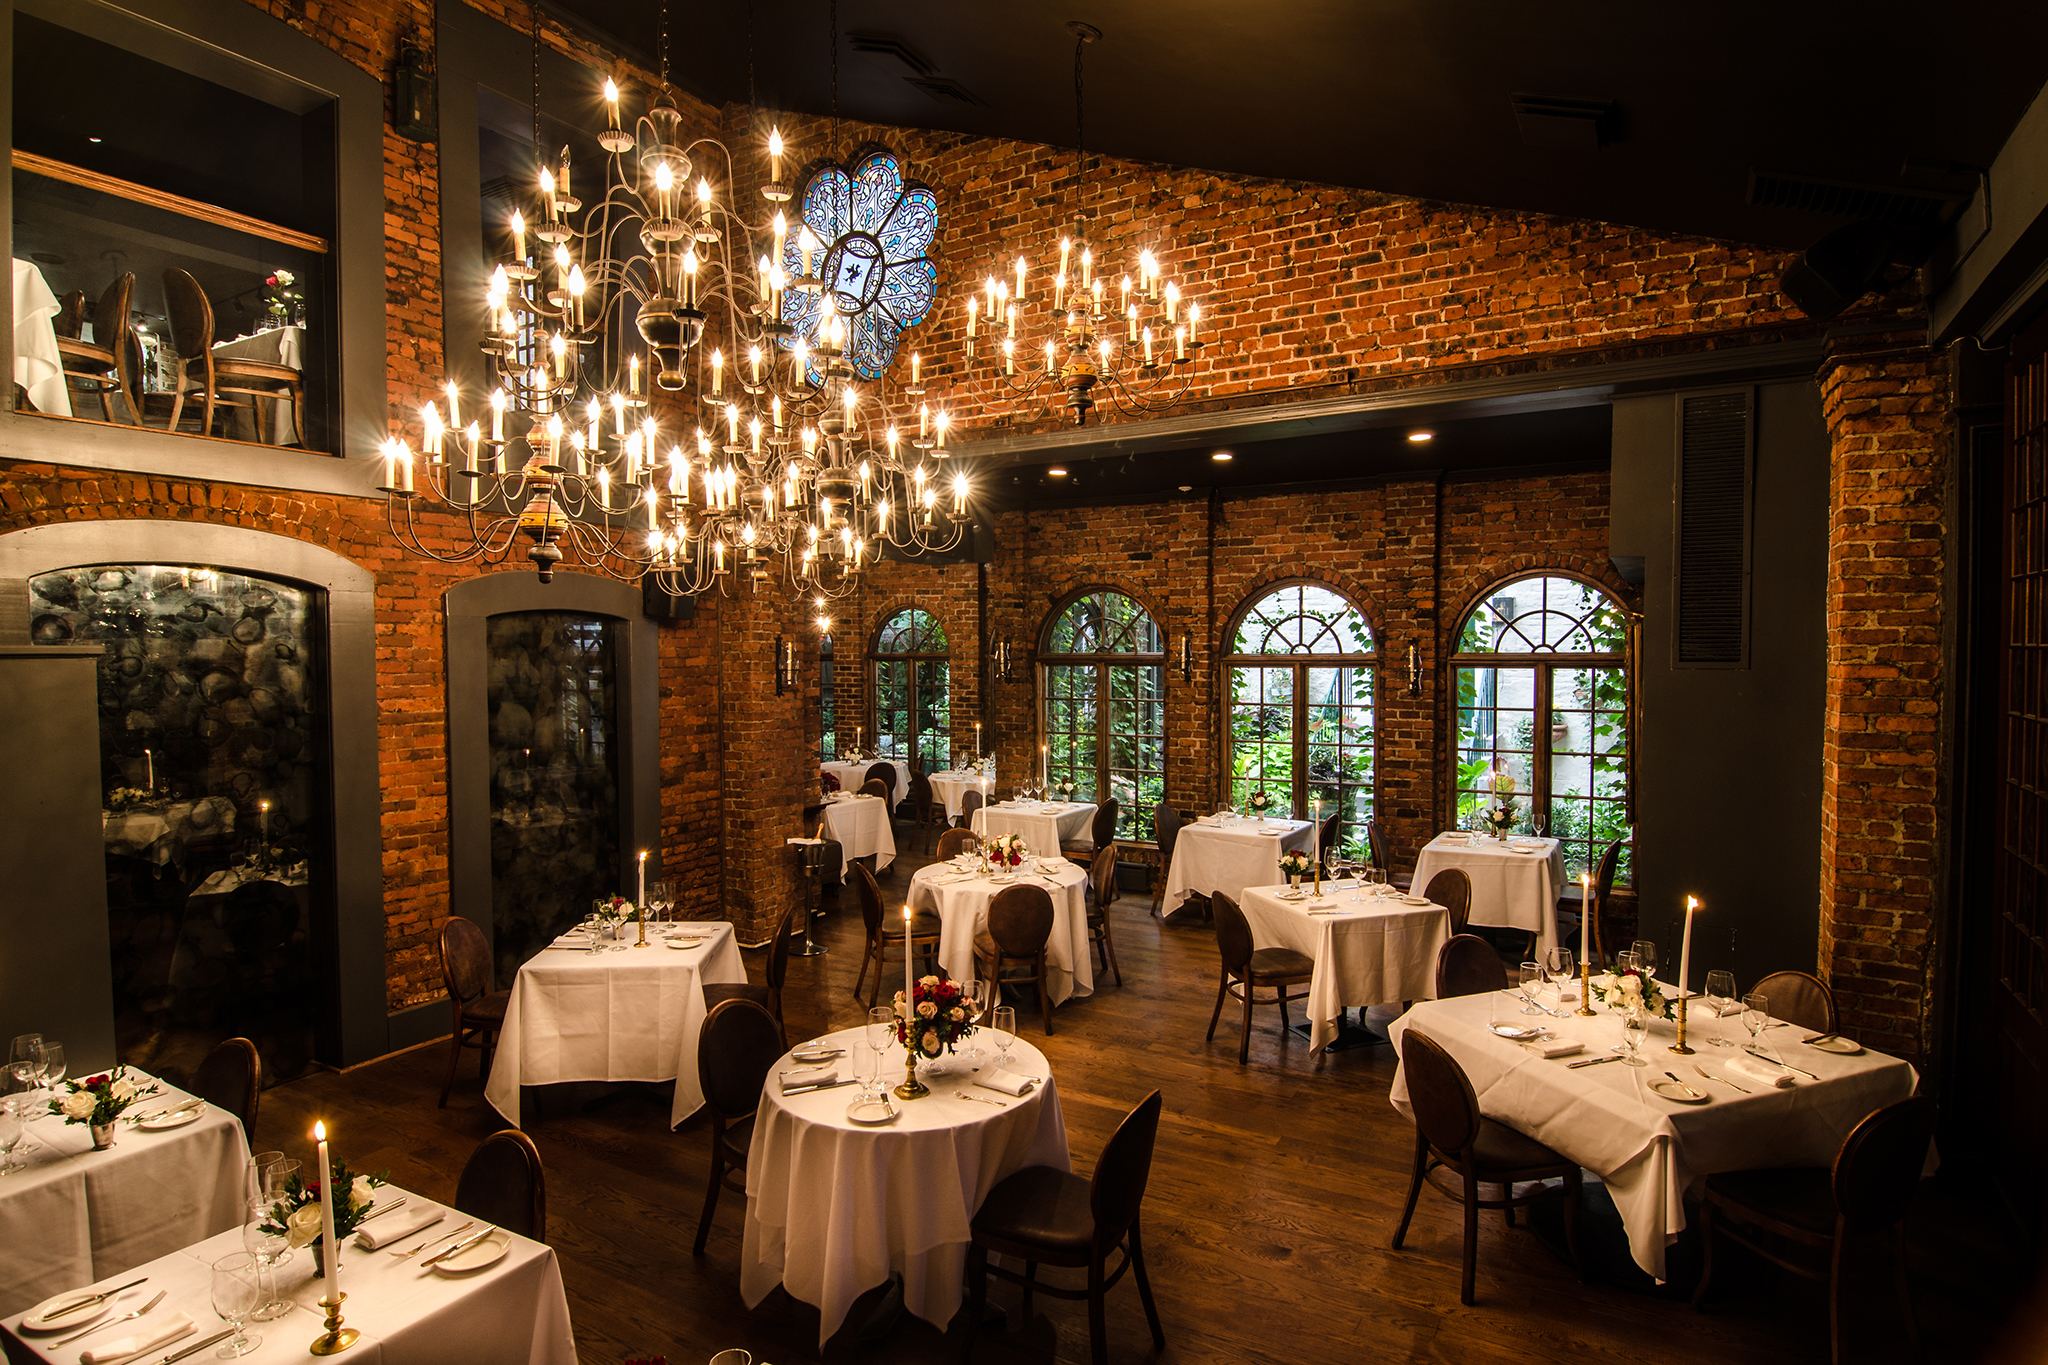 15 Most Romantic Restaurants in NYC - Best Fancy Restaurants in NYC